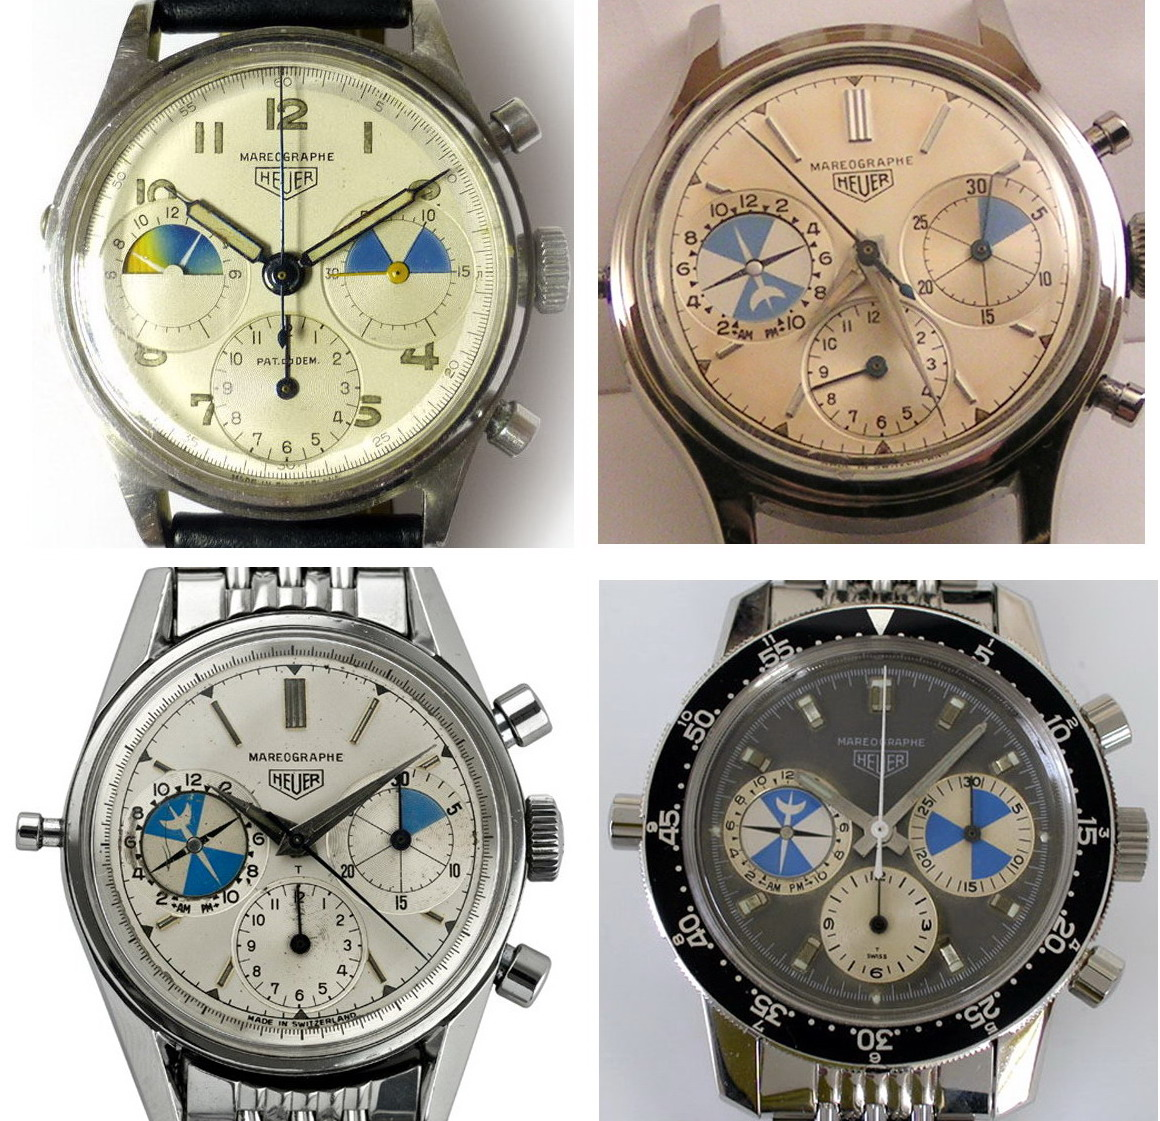 Four versions of the Heuer Mareographe